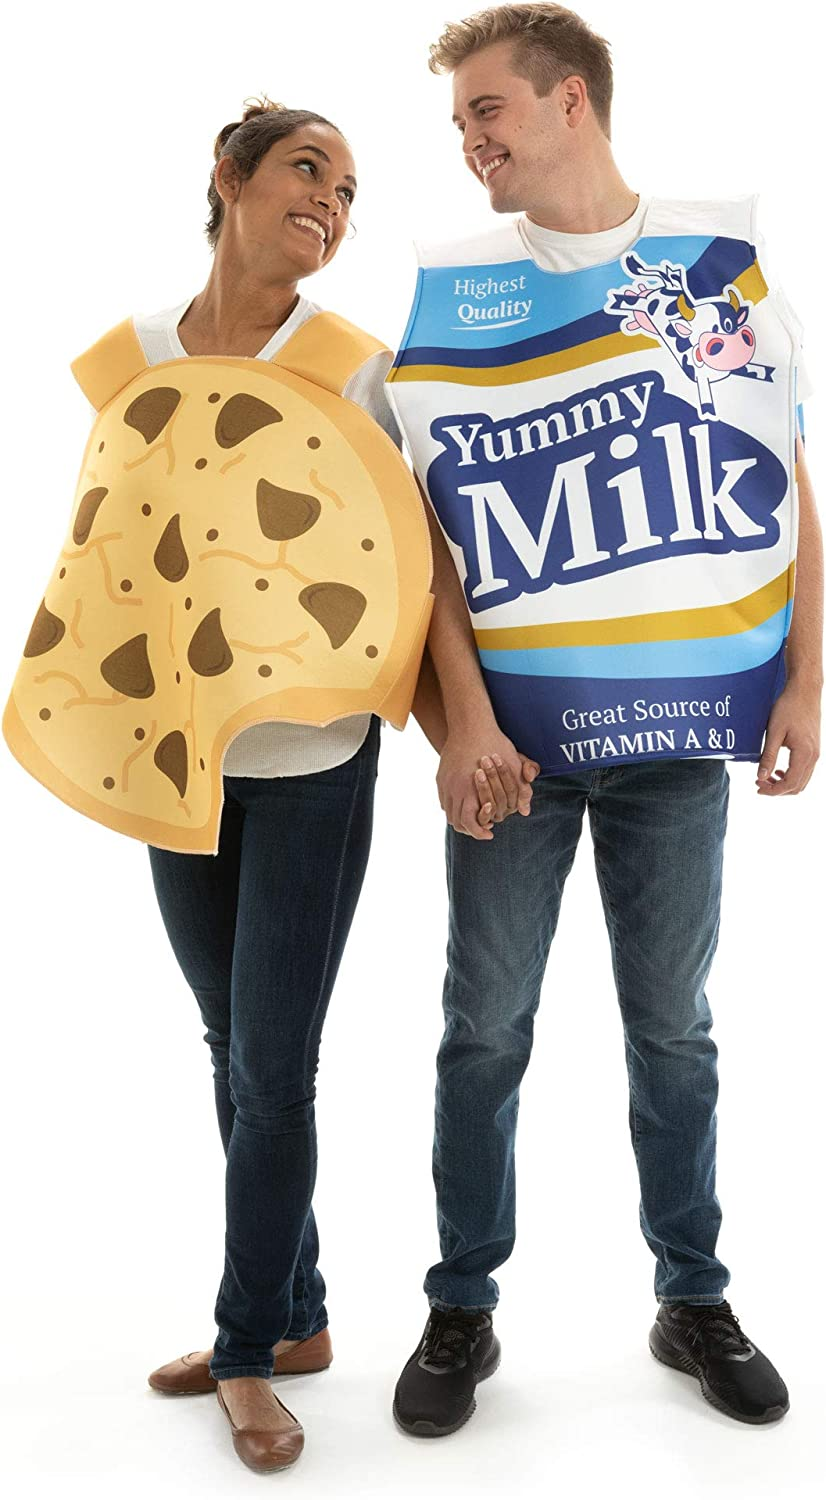 Top 10 Food And Beverage Halloween Costumes